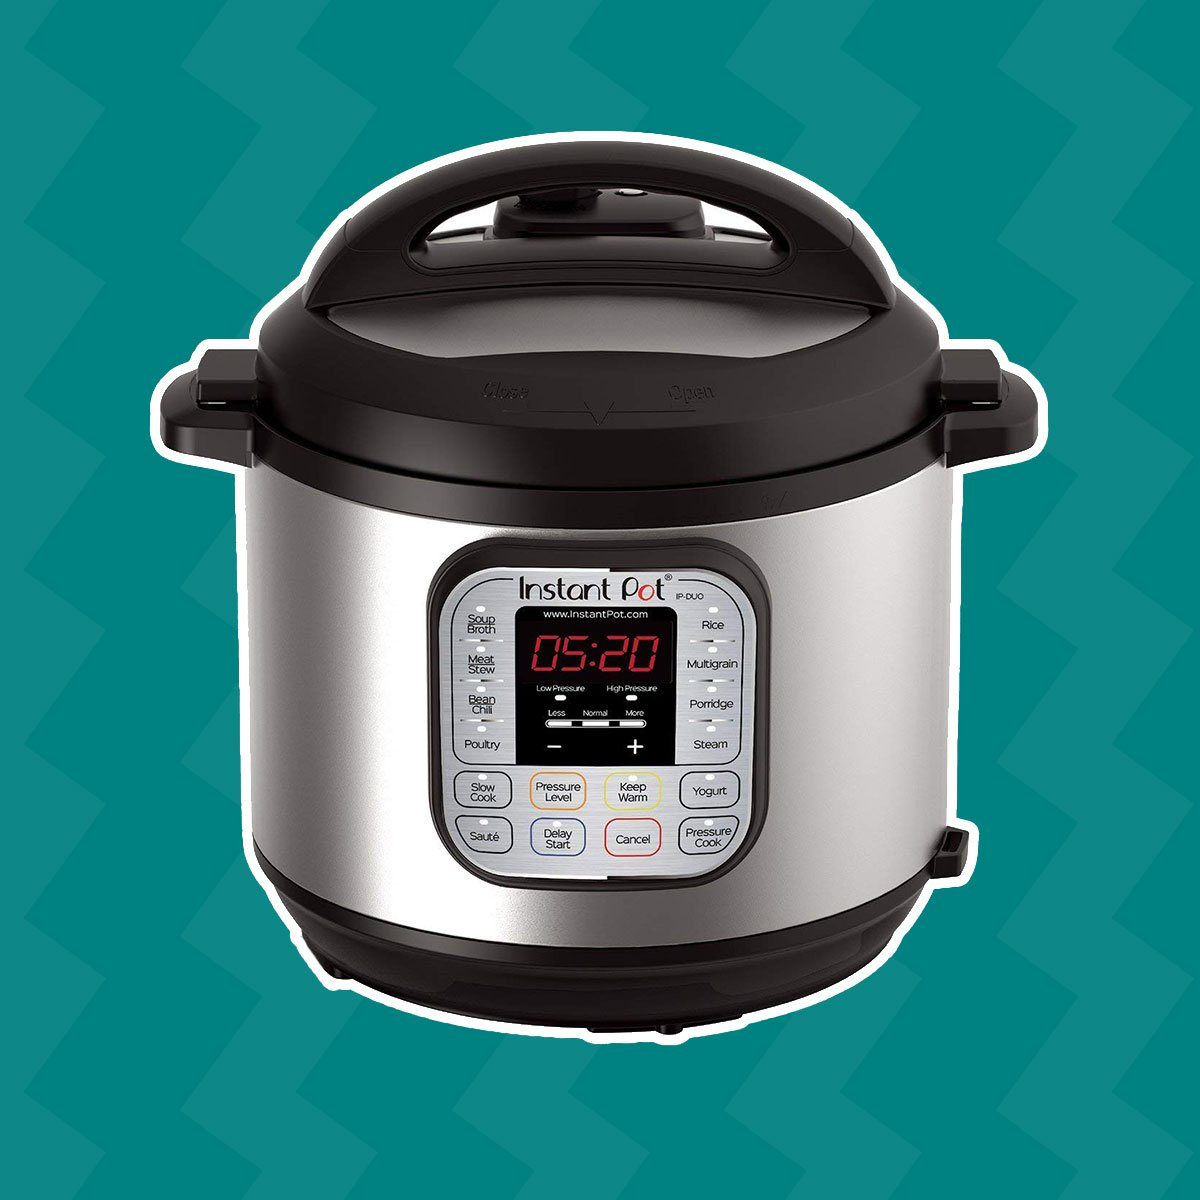 Instant Pot DUO 6-Quart Multi-Use Programmable Pressure Cooker